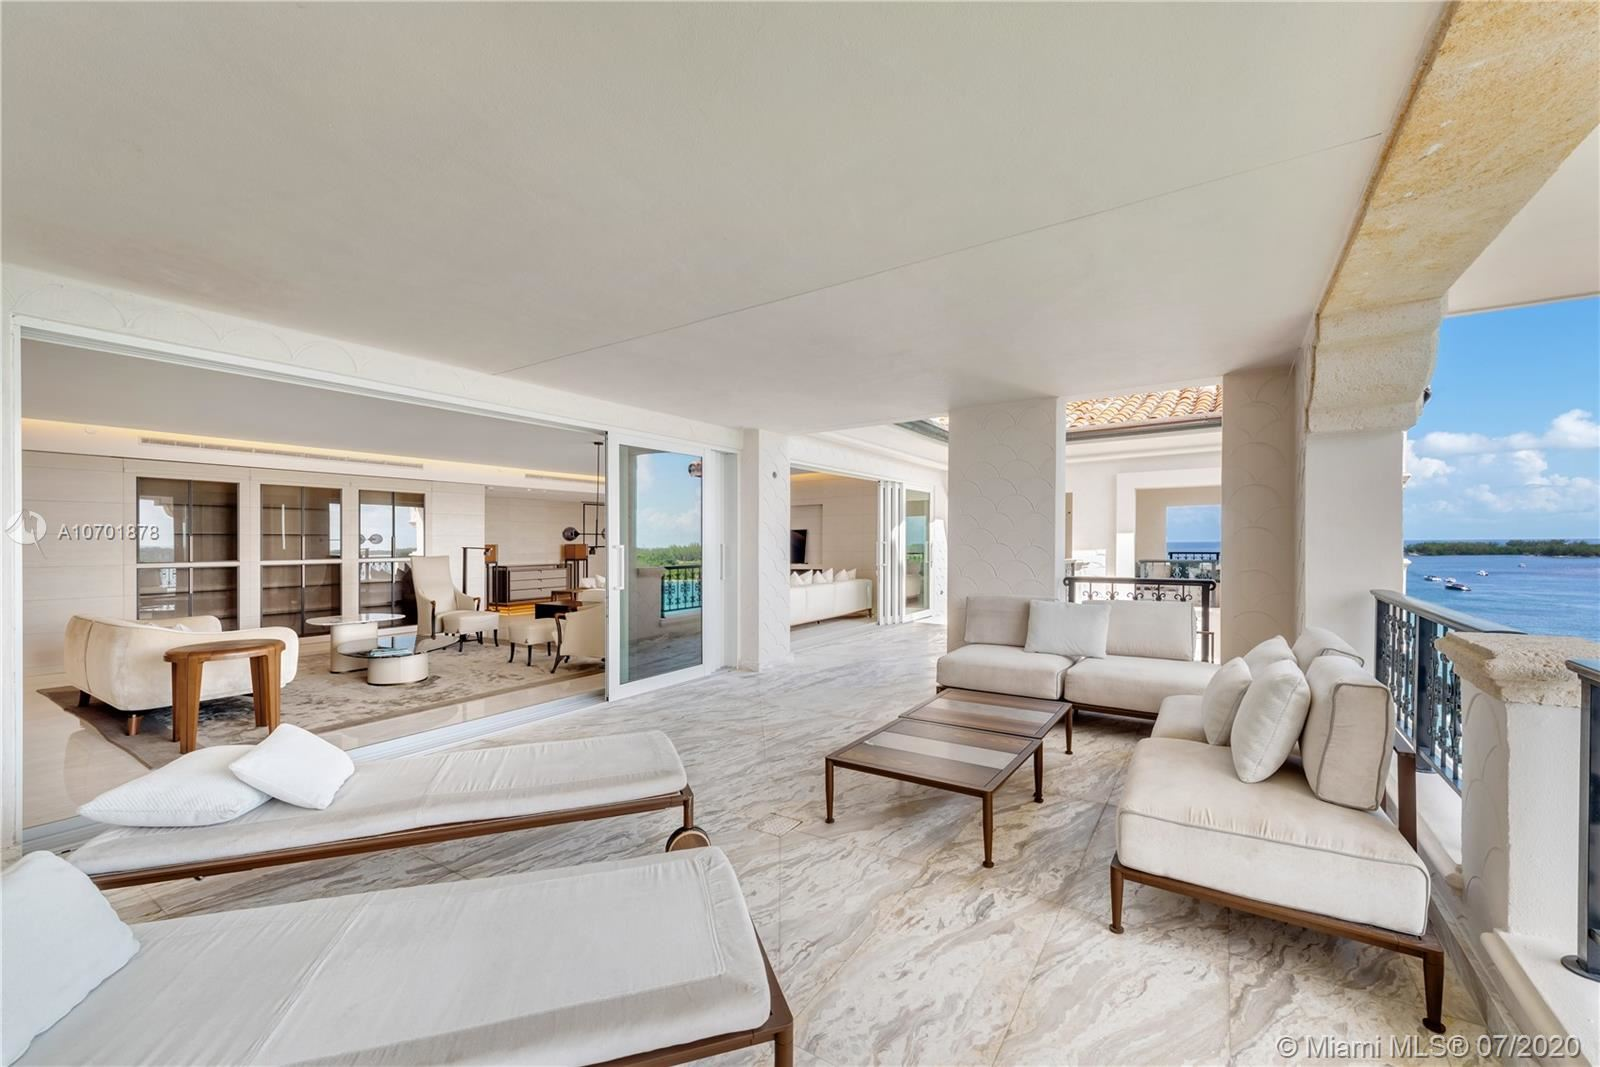 Photo 14 of Listing MLS a10701878 in 5292 Fisher Island Dr #5292 Miami FL 33109